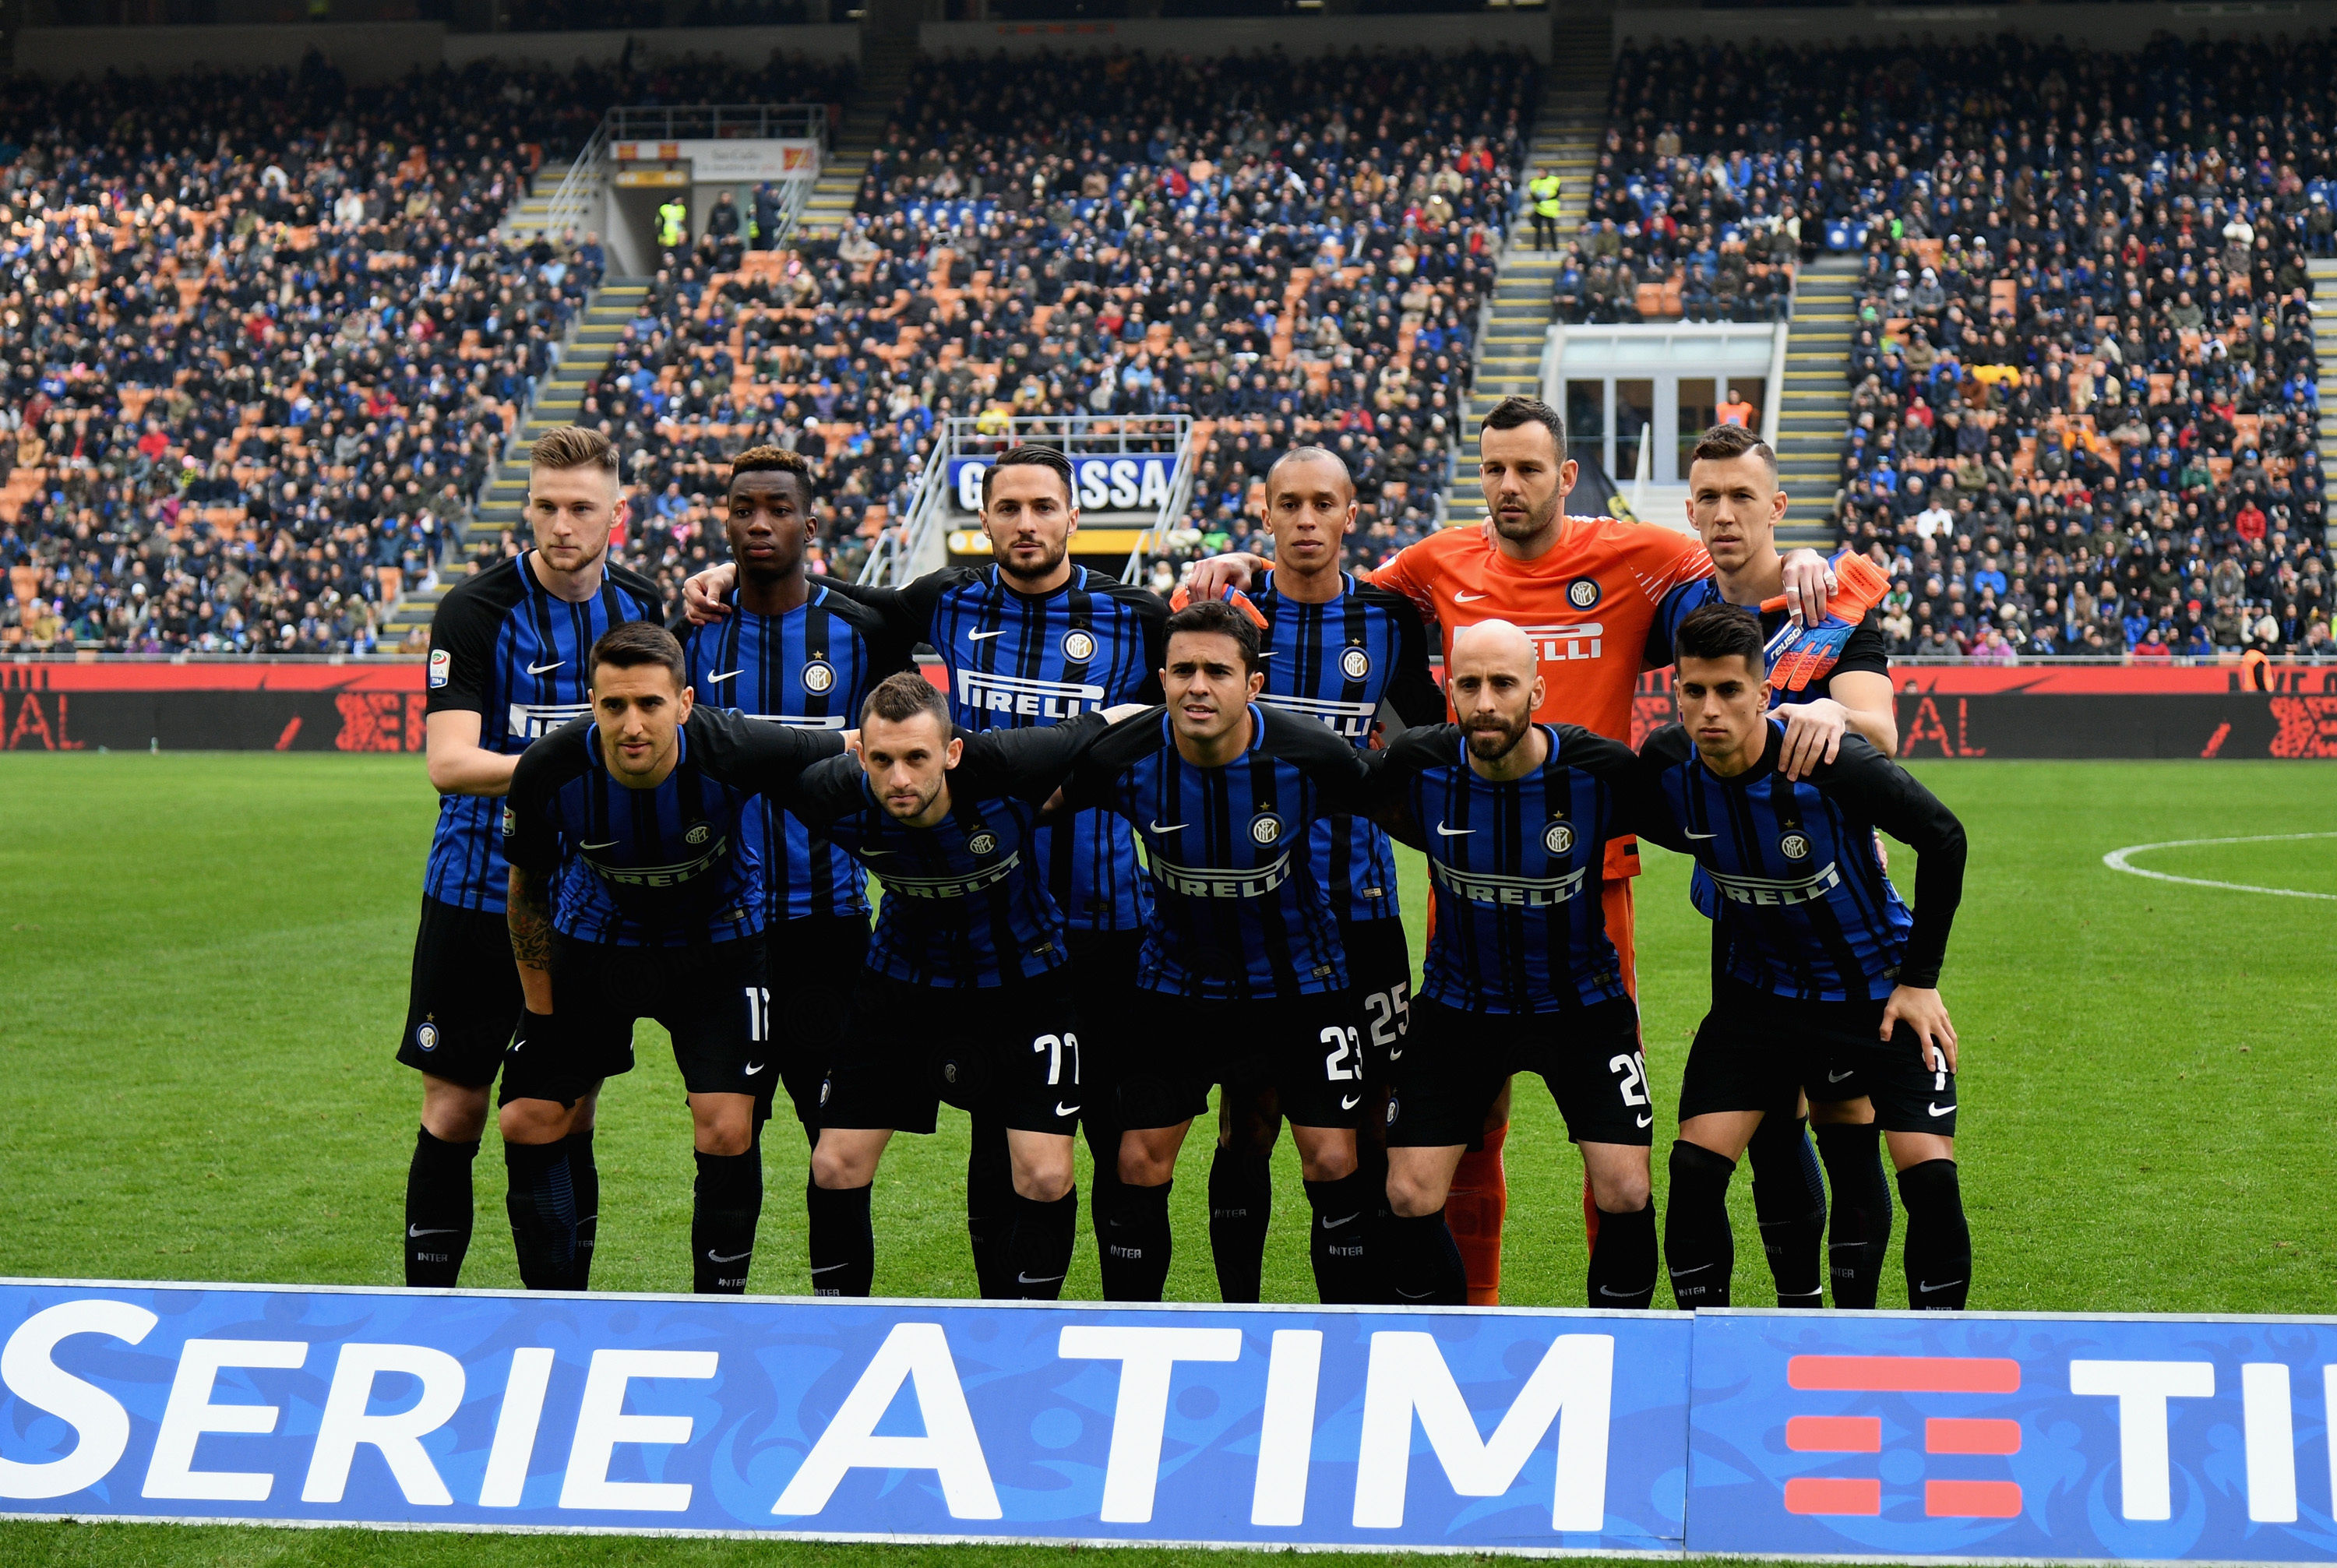 The best photos from Inter 2-1 Bologna